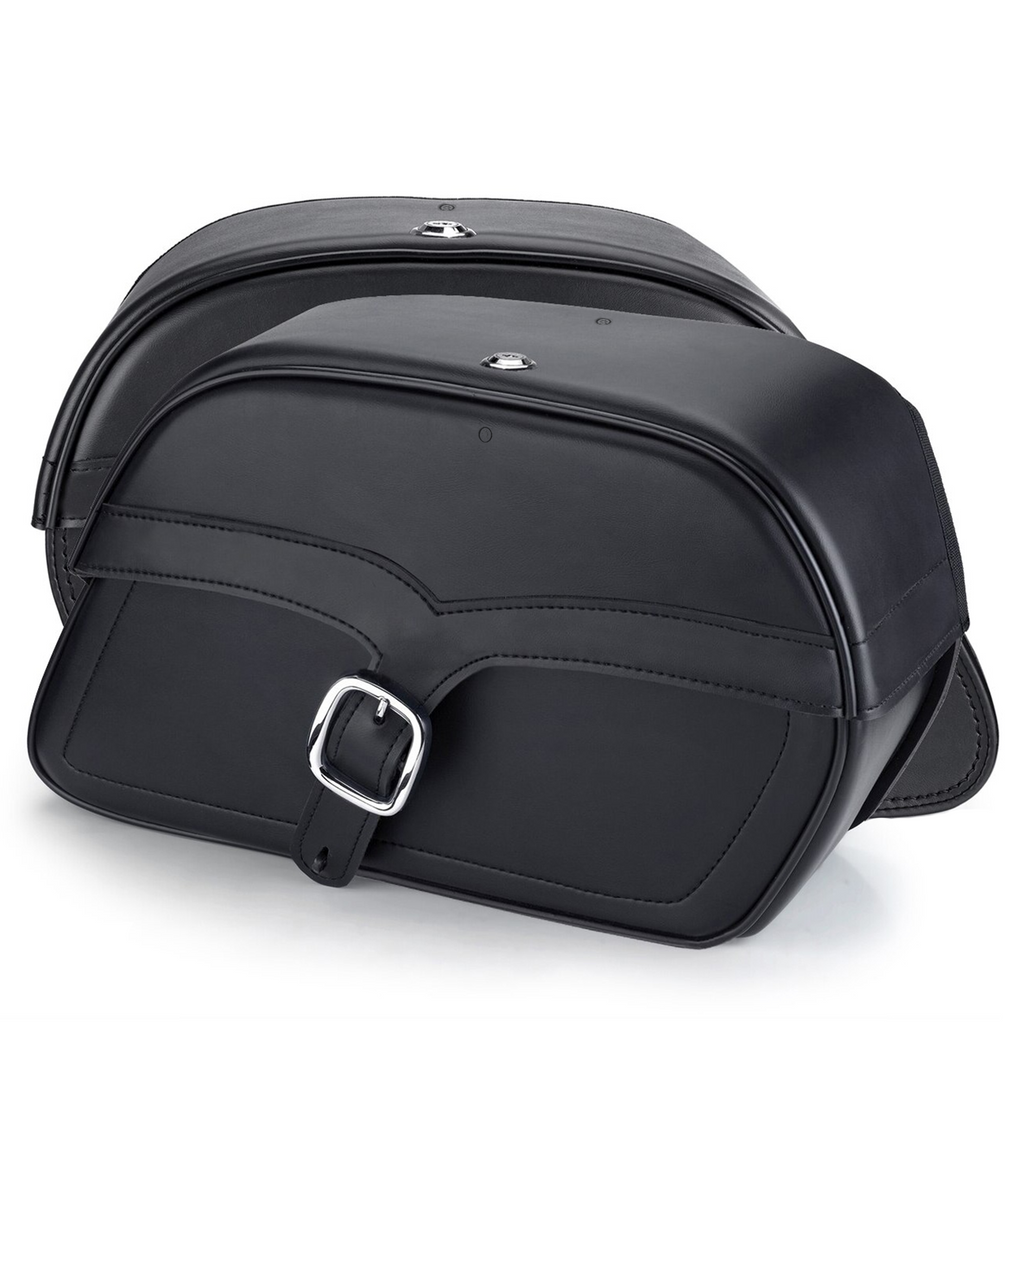 Honda 1500 Valkyrie Interstate Charger Medium Single Strap Motorcycle Saddlebags Both Bags View